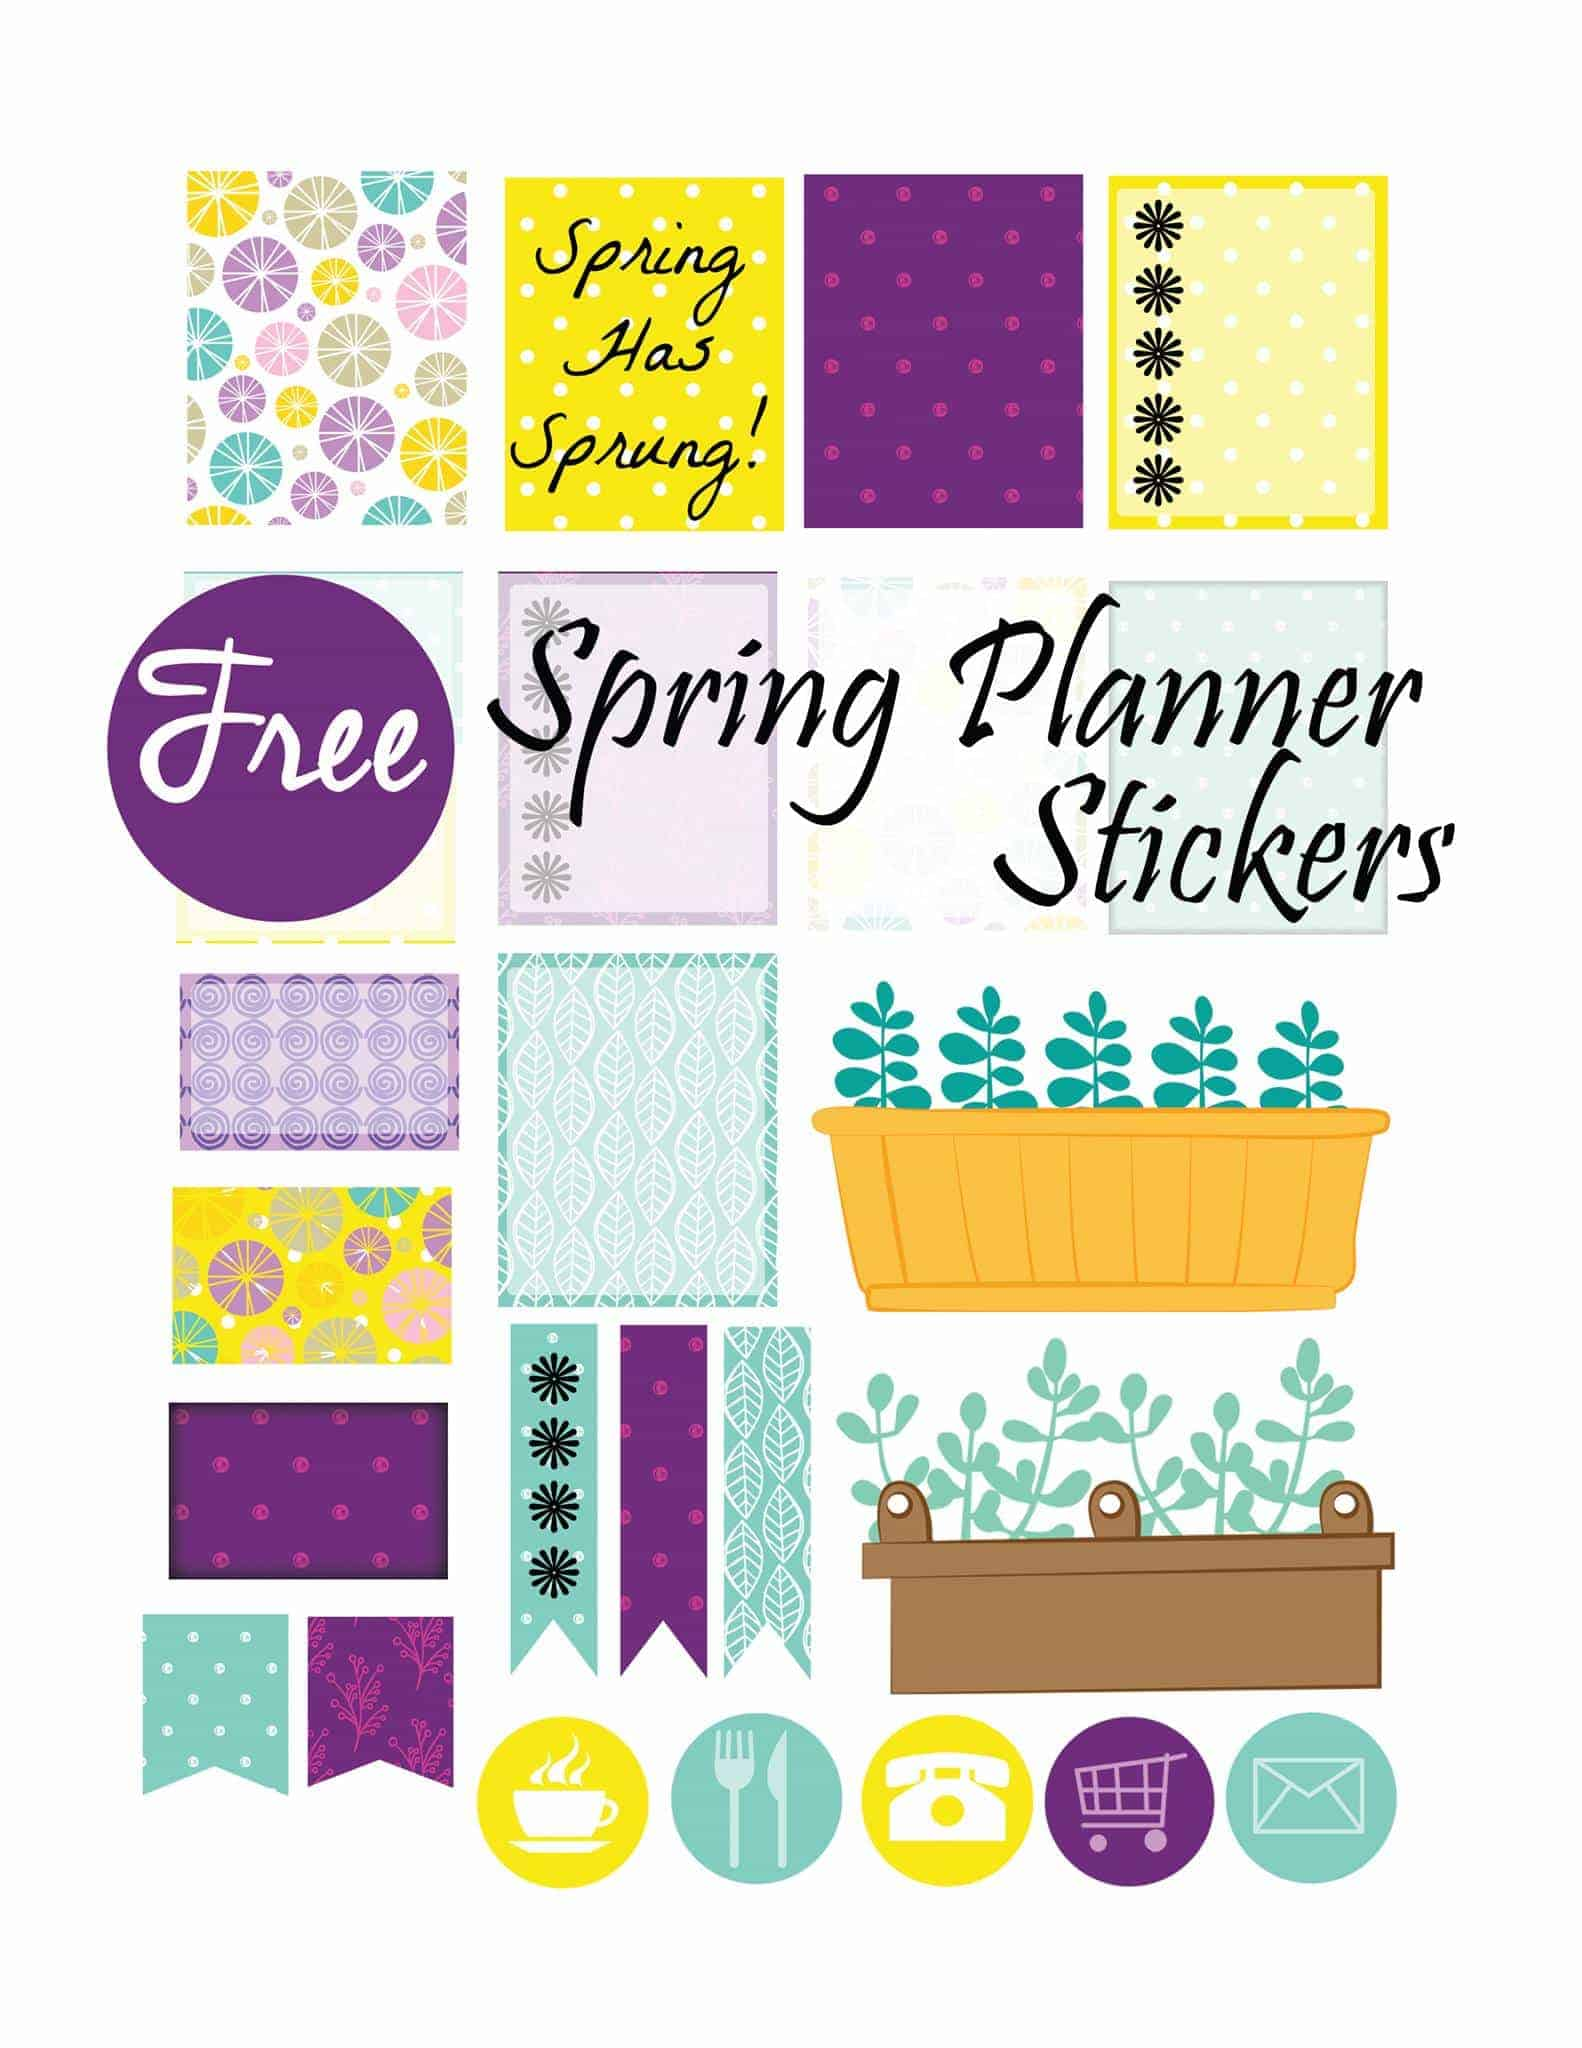 Free Erin Condren Planner Stickers for Spring! | Sweet T ...